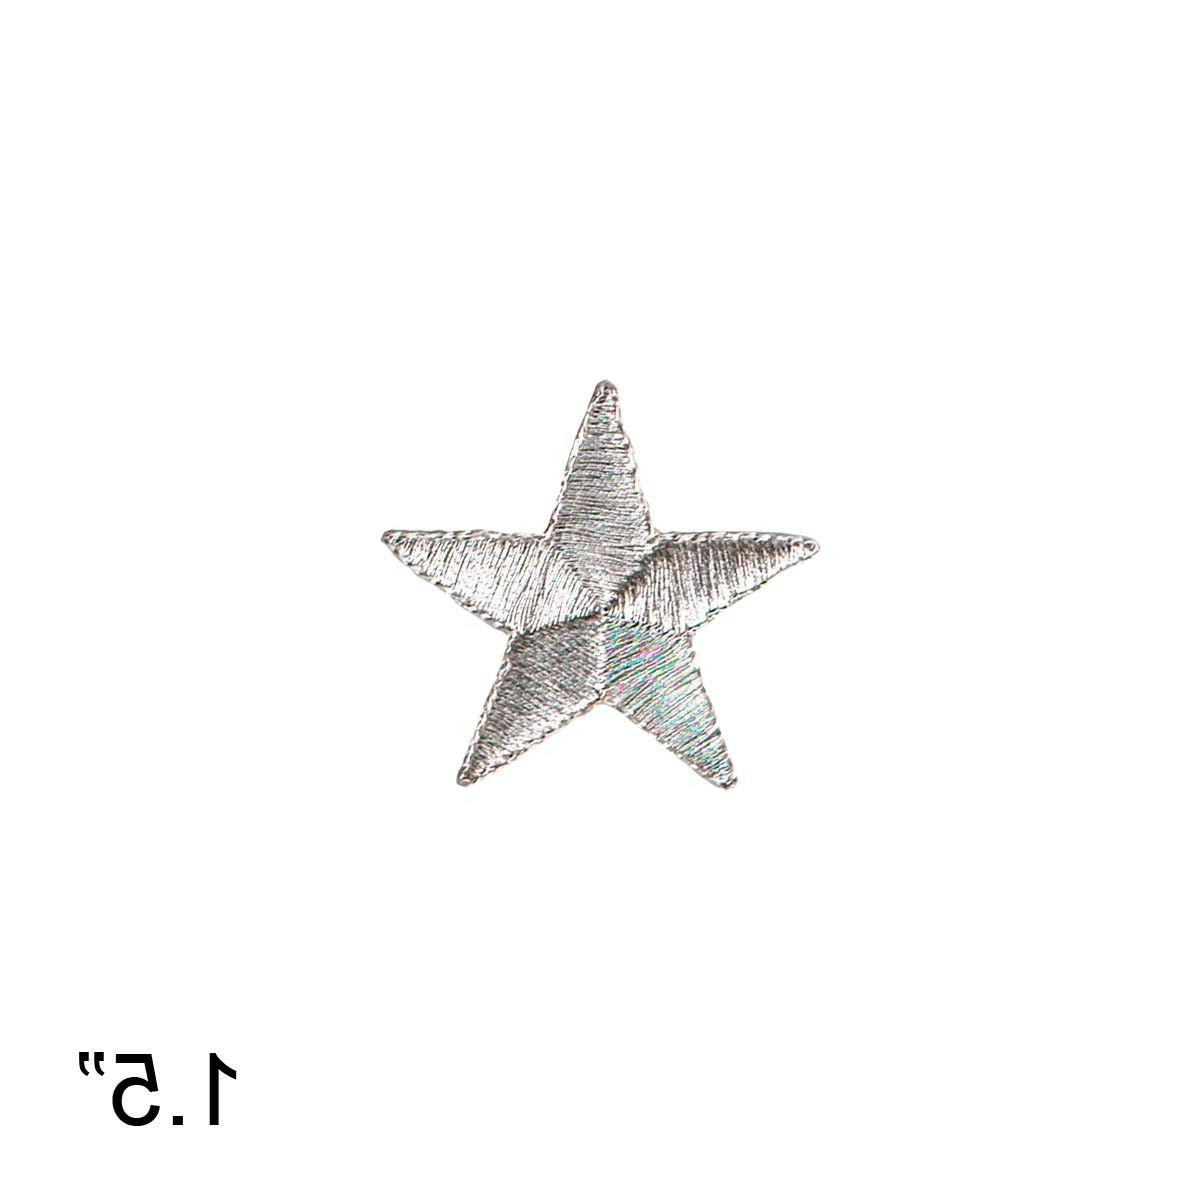 1 1/2 INCH Silver Star Embroidered Iron On Patch - Sky Moon